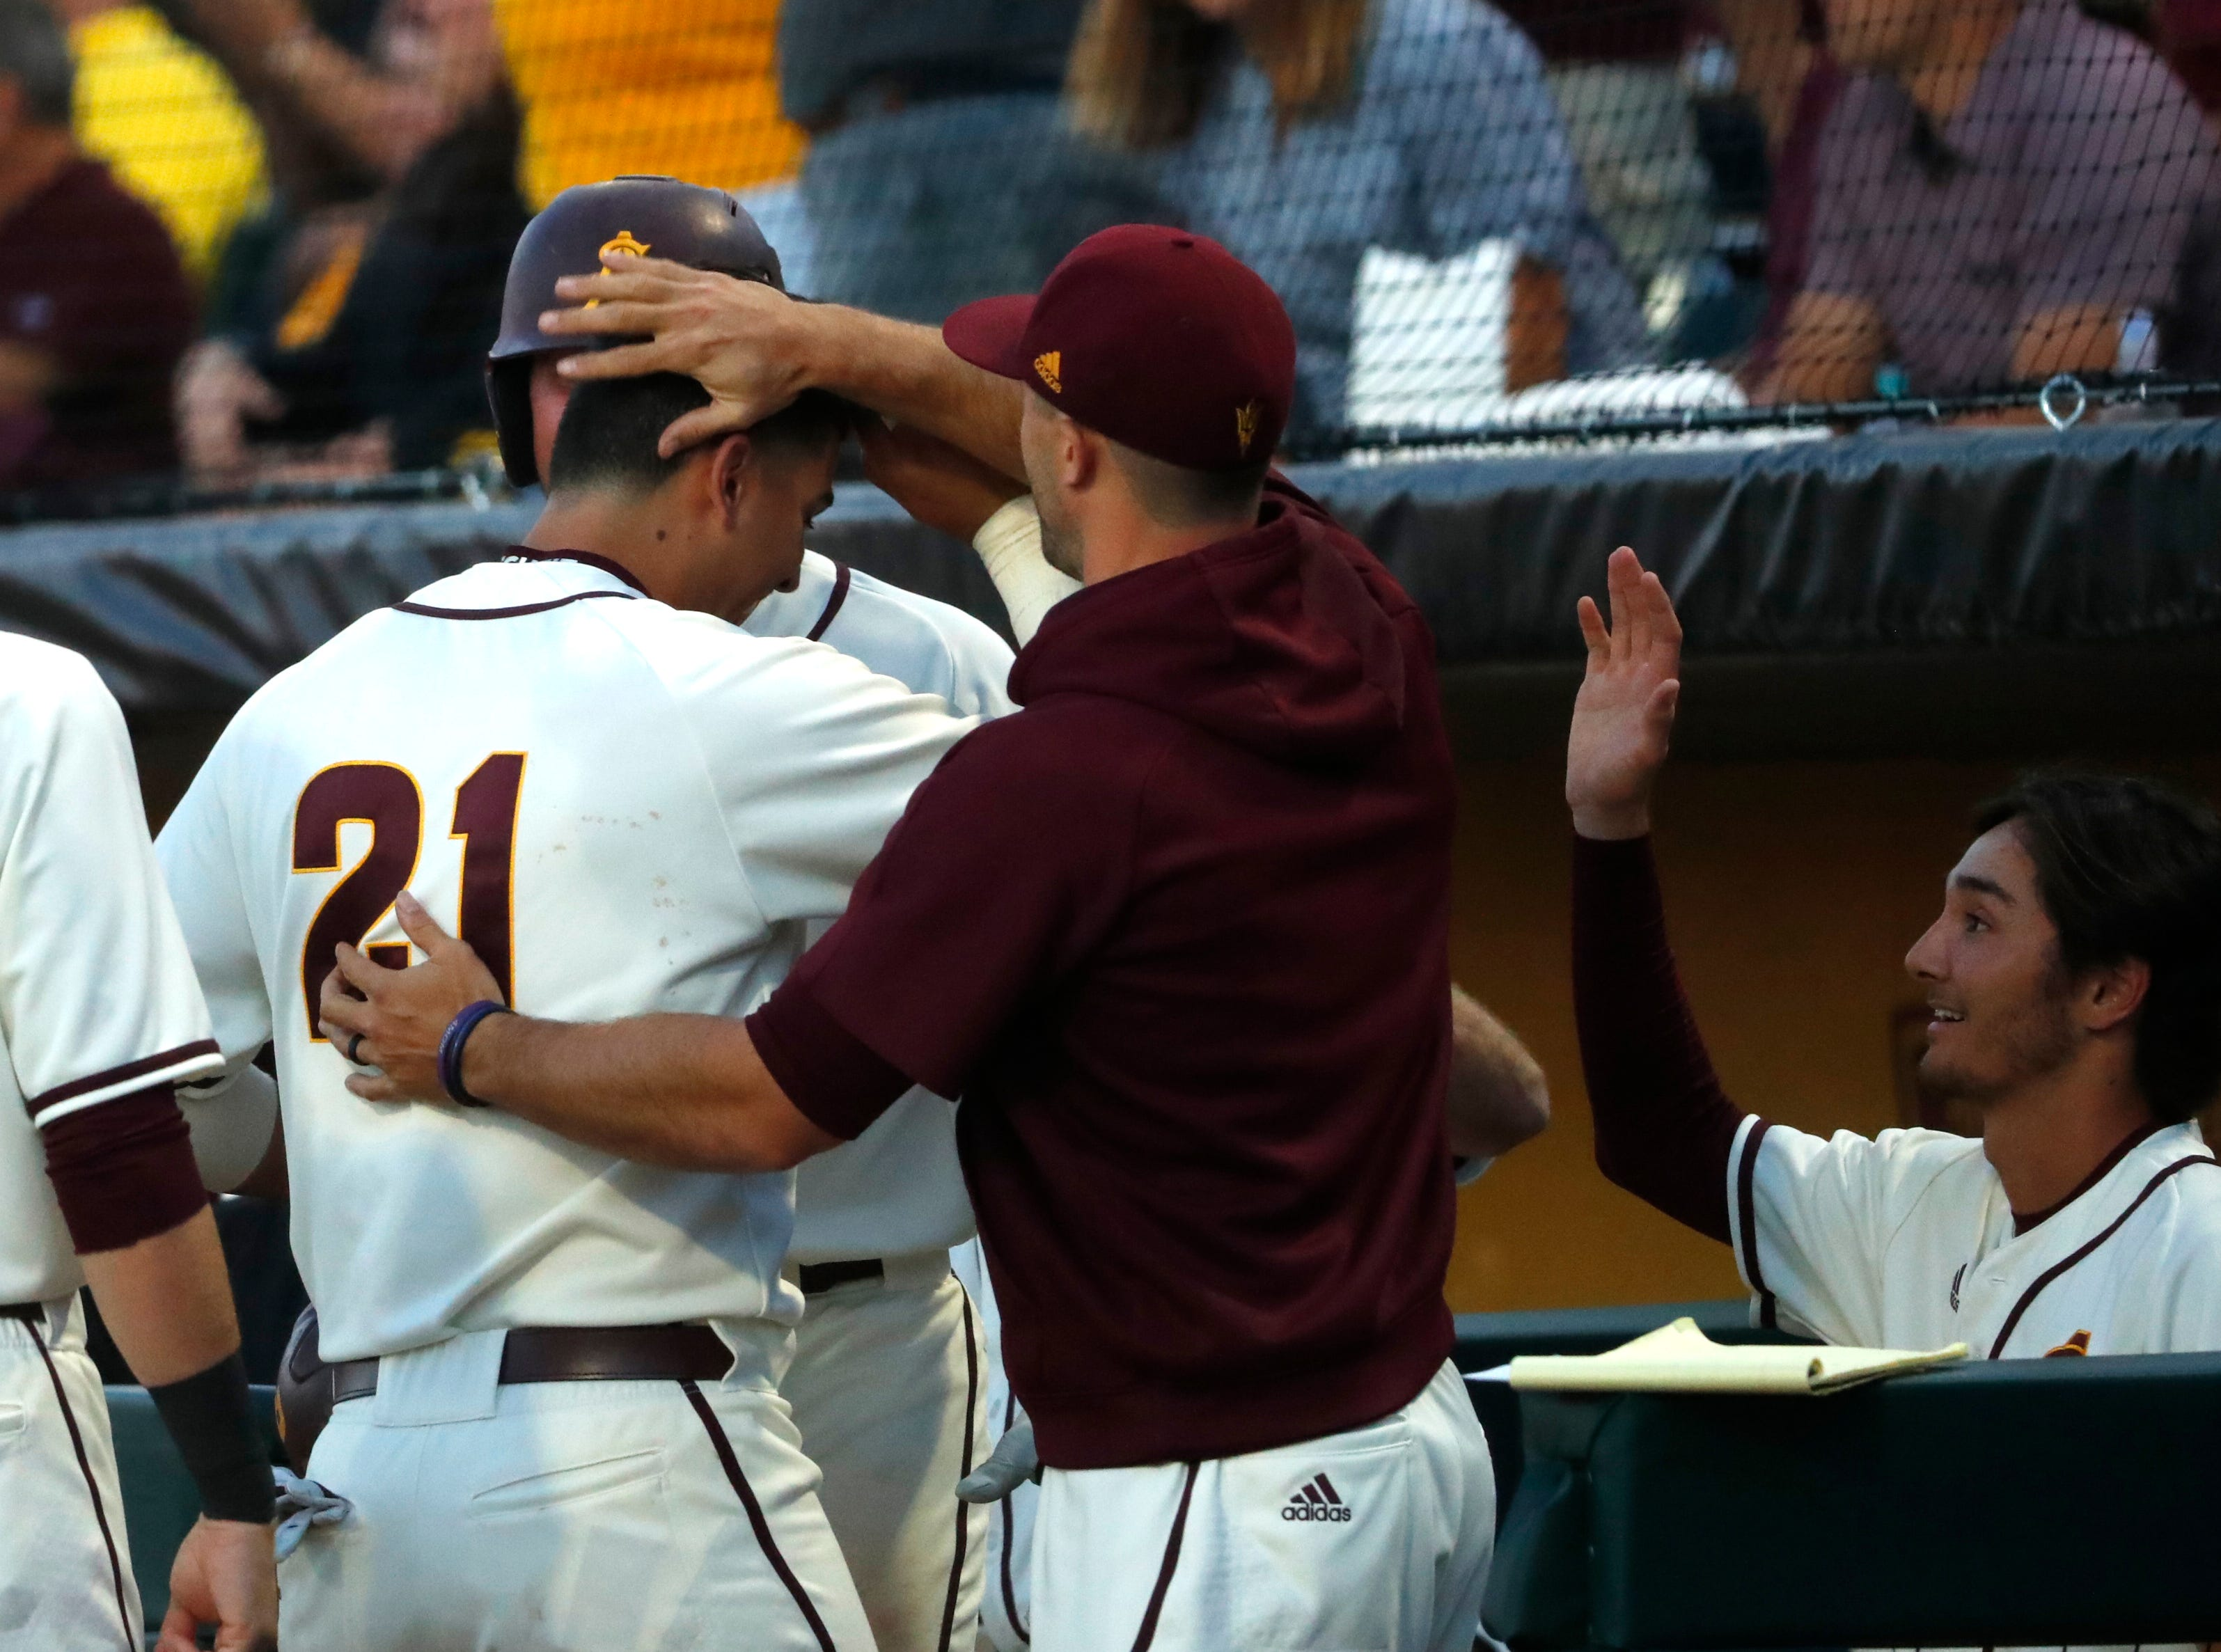 ASU's Carter Aldrete (21) celebrates in the dugout after hitting a home run against Stanford during the sixth inning at Phoenix Municipal Stadium in Phoenix, Ariz. on May 24, 2019.